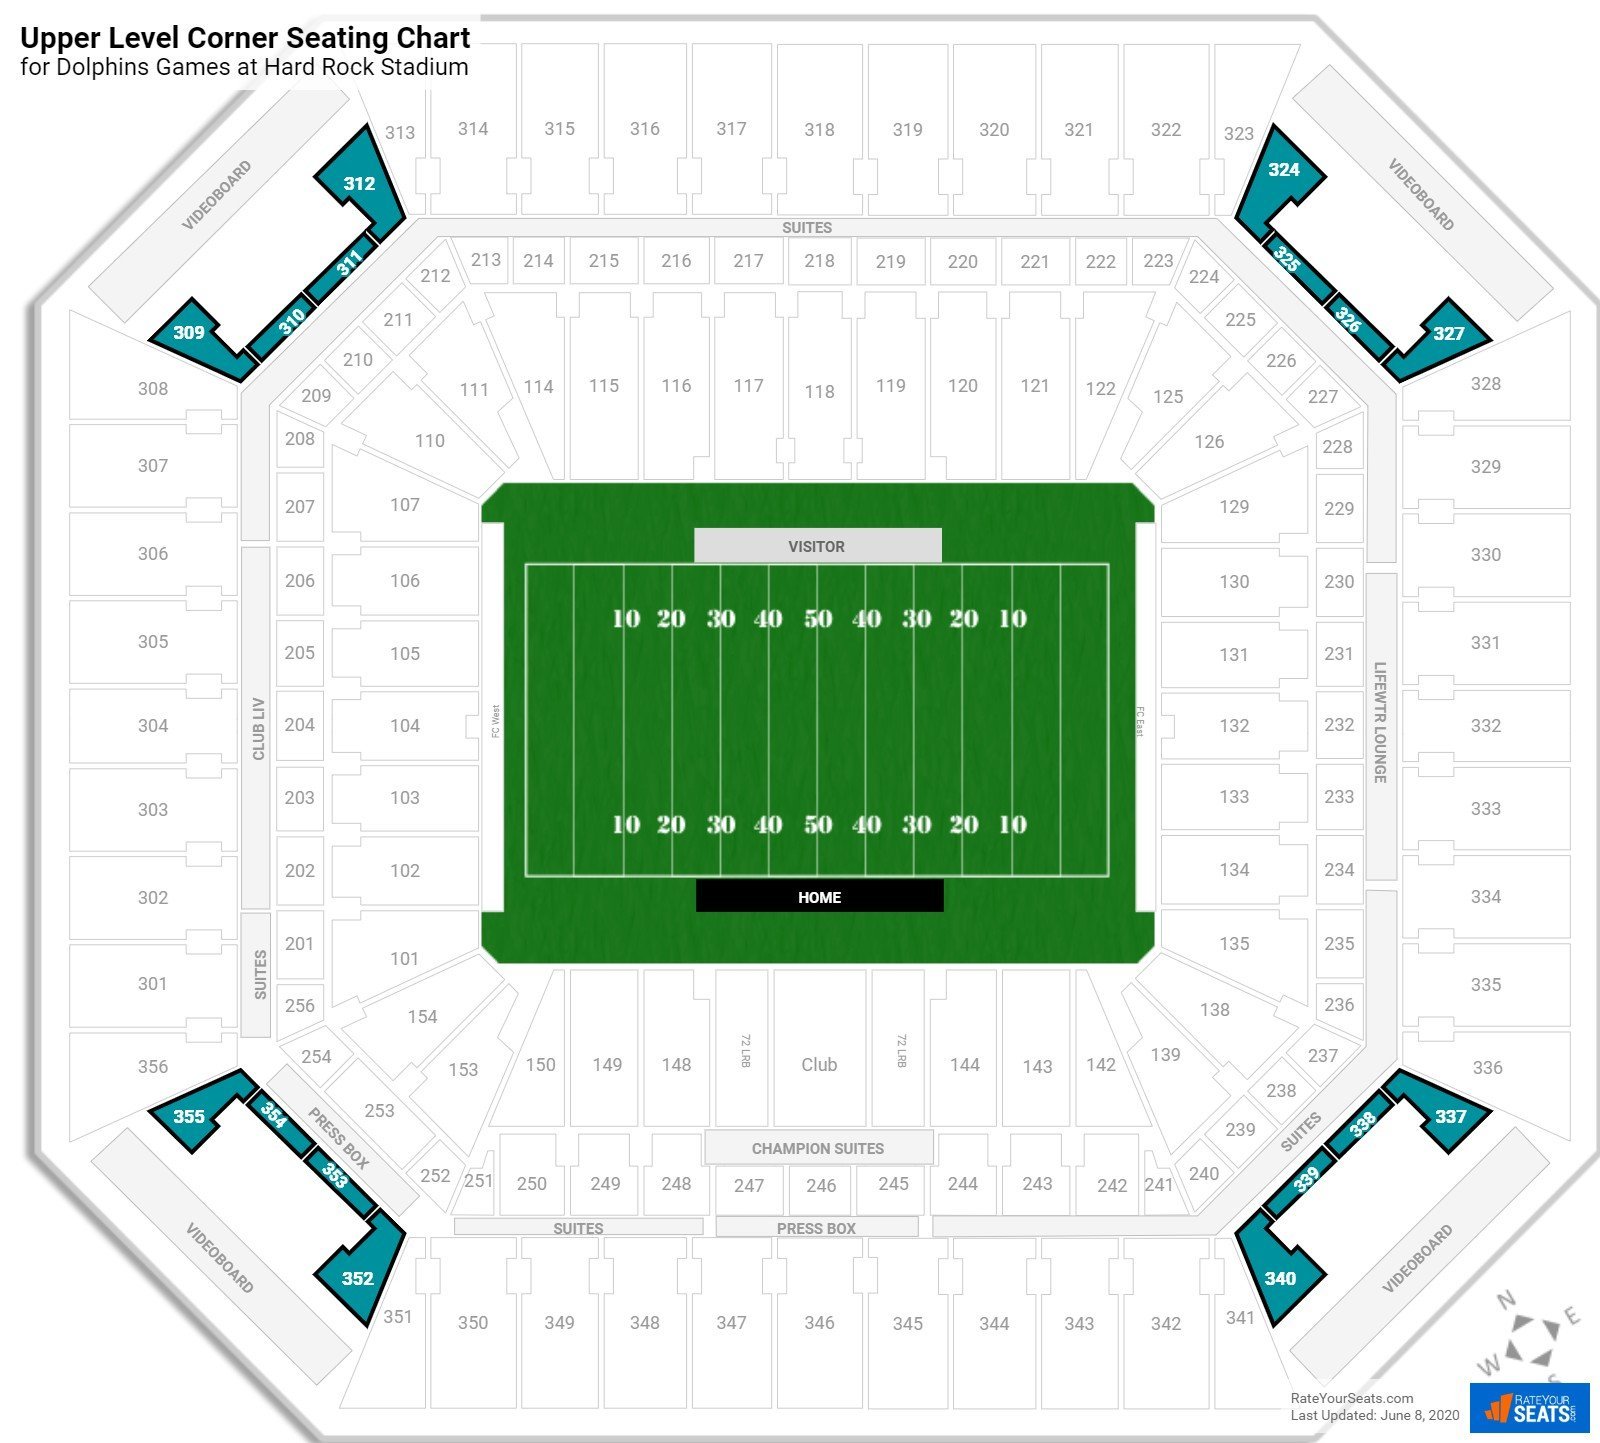 Hard Rock Stadium Upper Level Corner seating chart